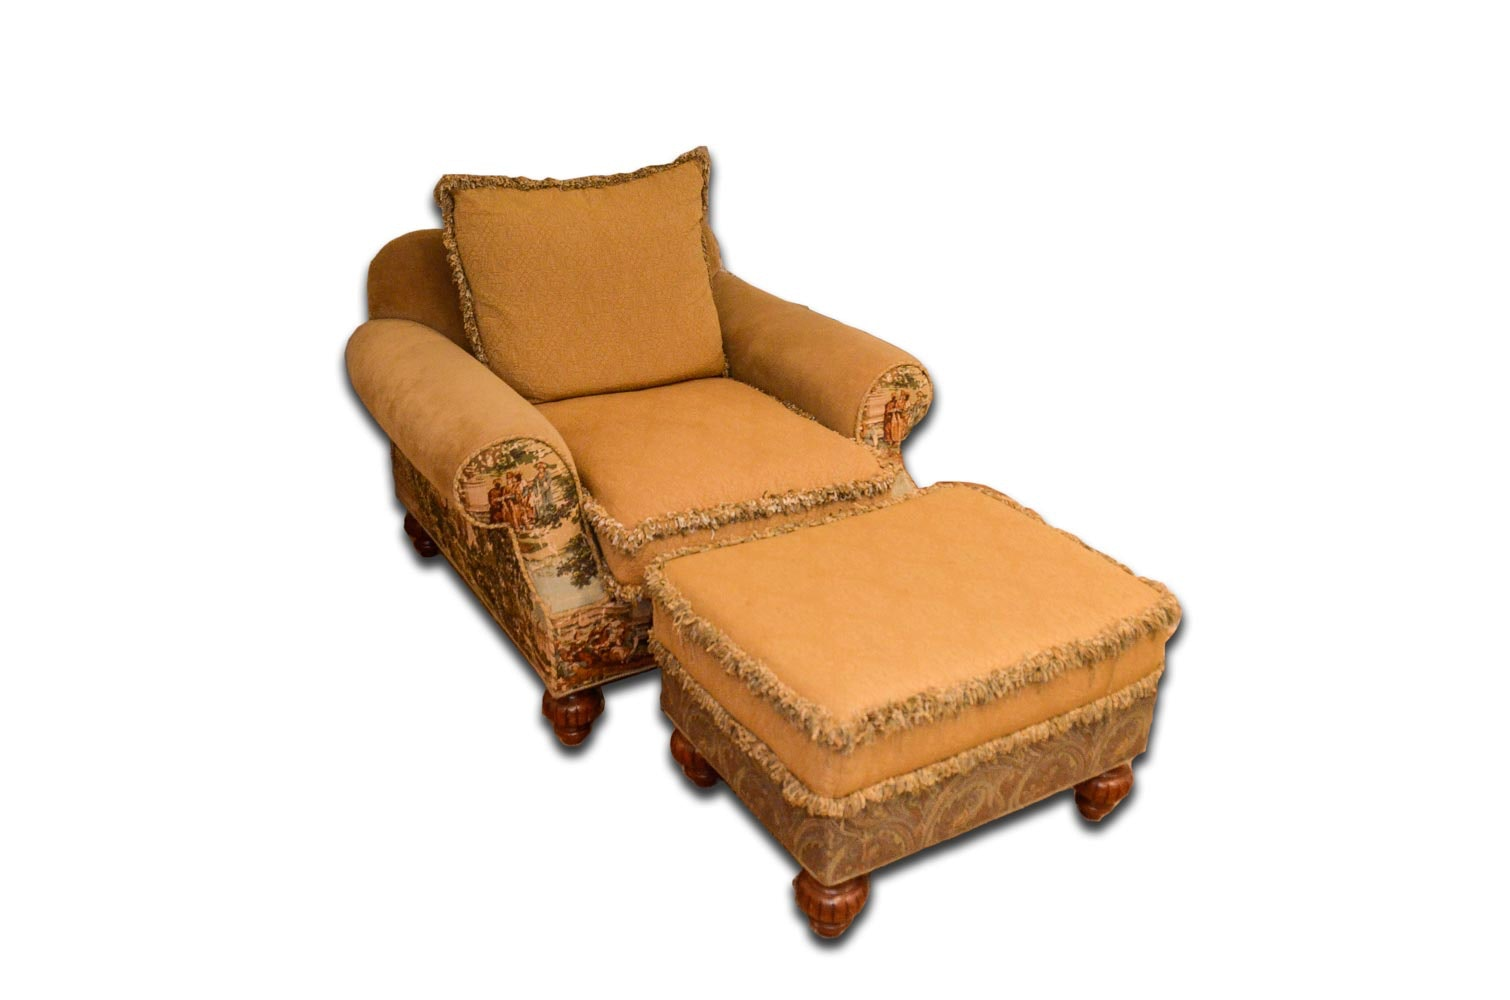 Charming Lounge Chair And Ottoman By Hickory House Furniture Company ...